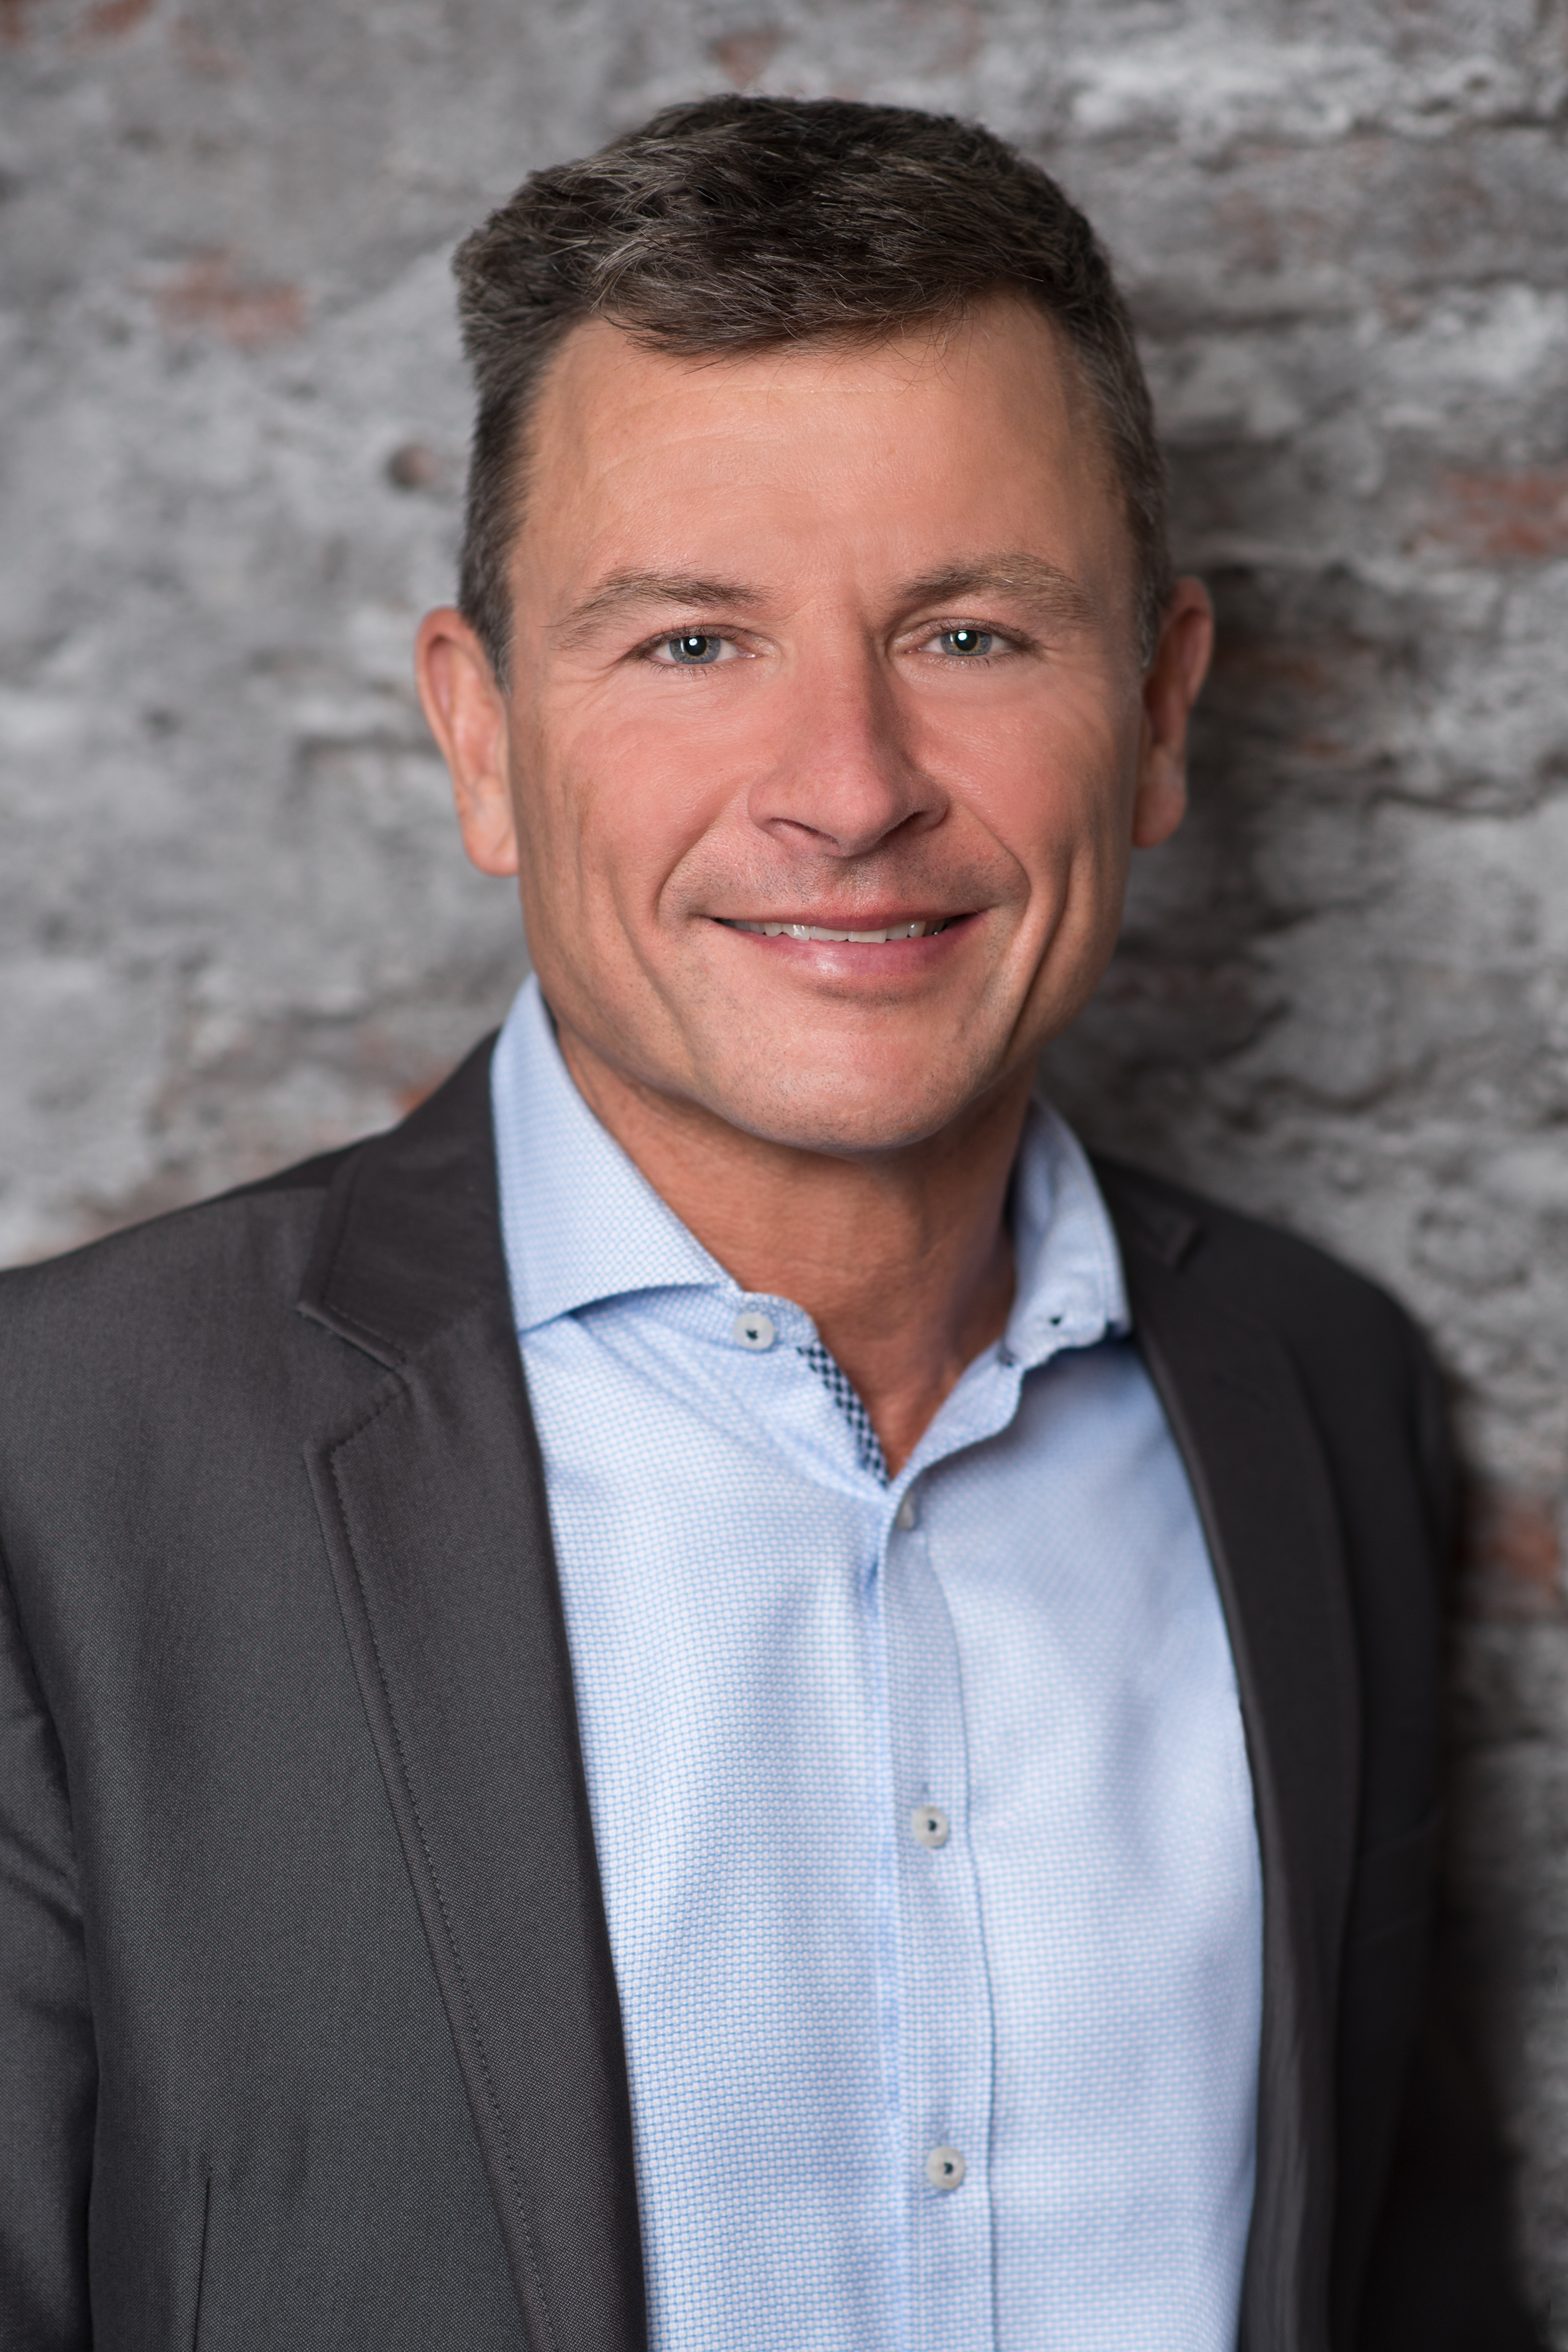 STRUCTeam has appointed Dr Roman Hillermeier as Transport Sector Lead